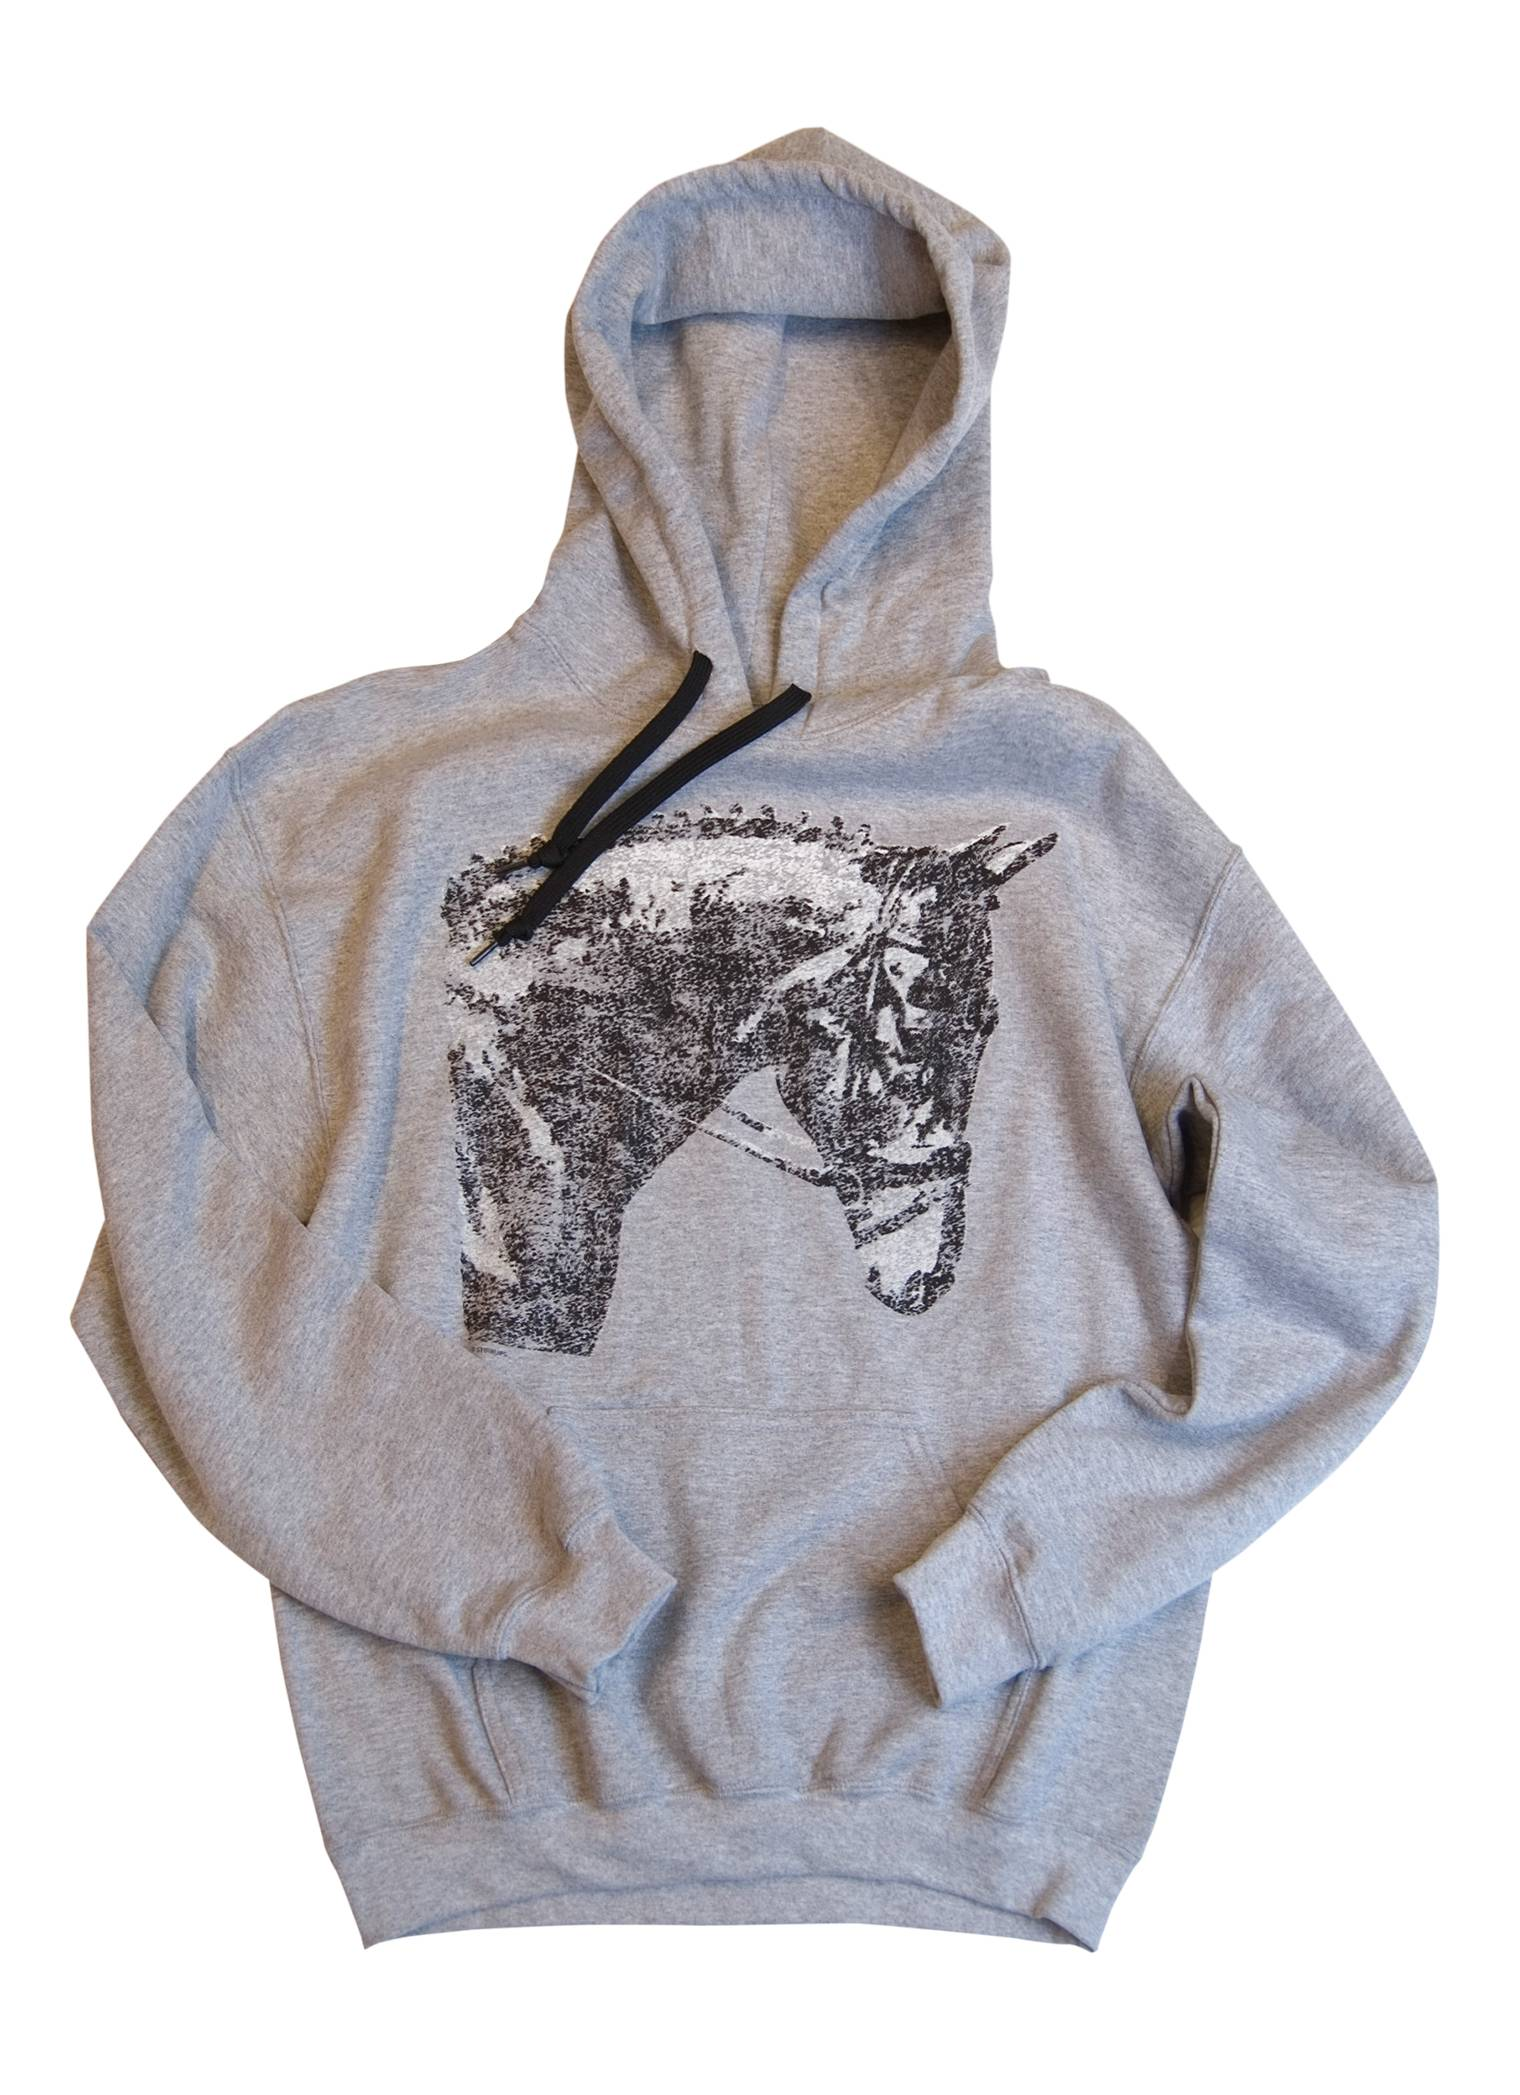 Stirrups Classic Horse Hooded Sweatshirt - Ladies